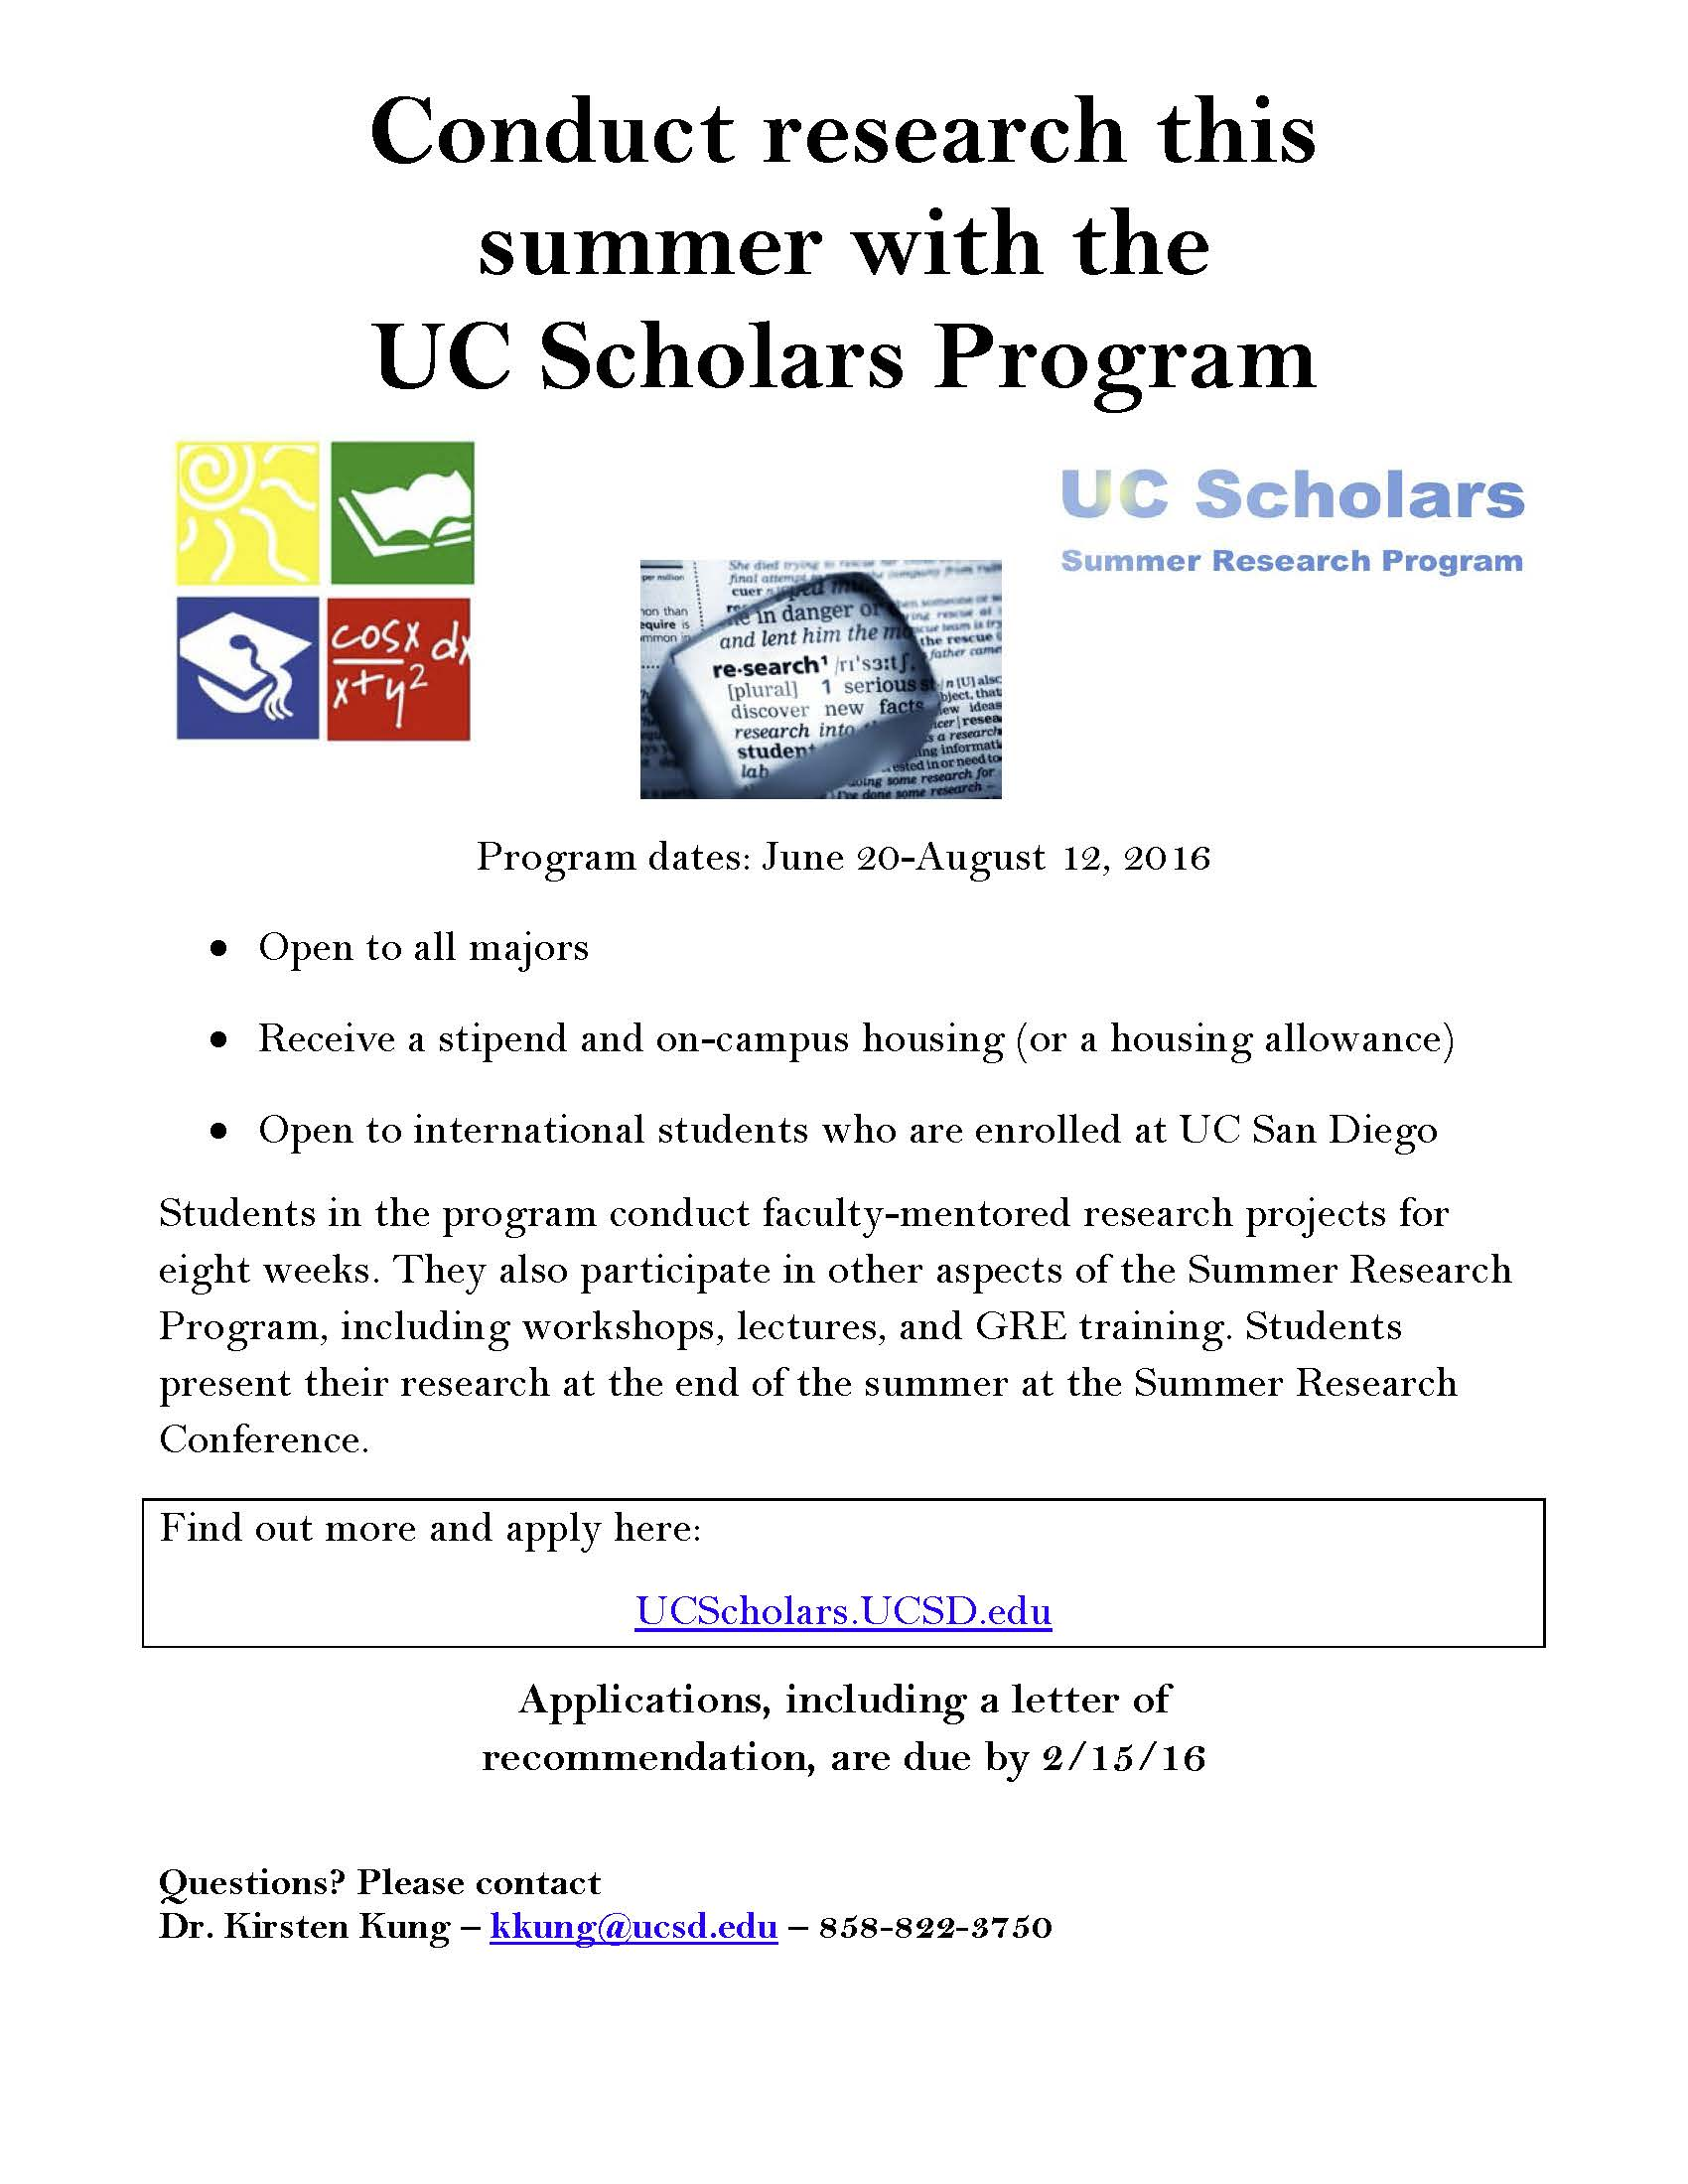 Conduct research this summer with the uc scholars program econ ug blog altavistaventures Choice Image